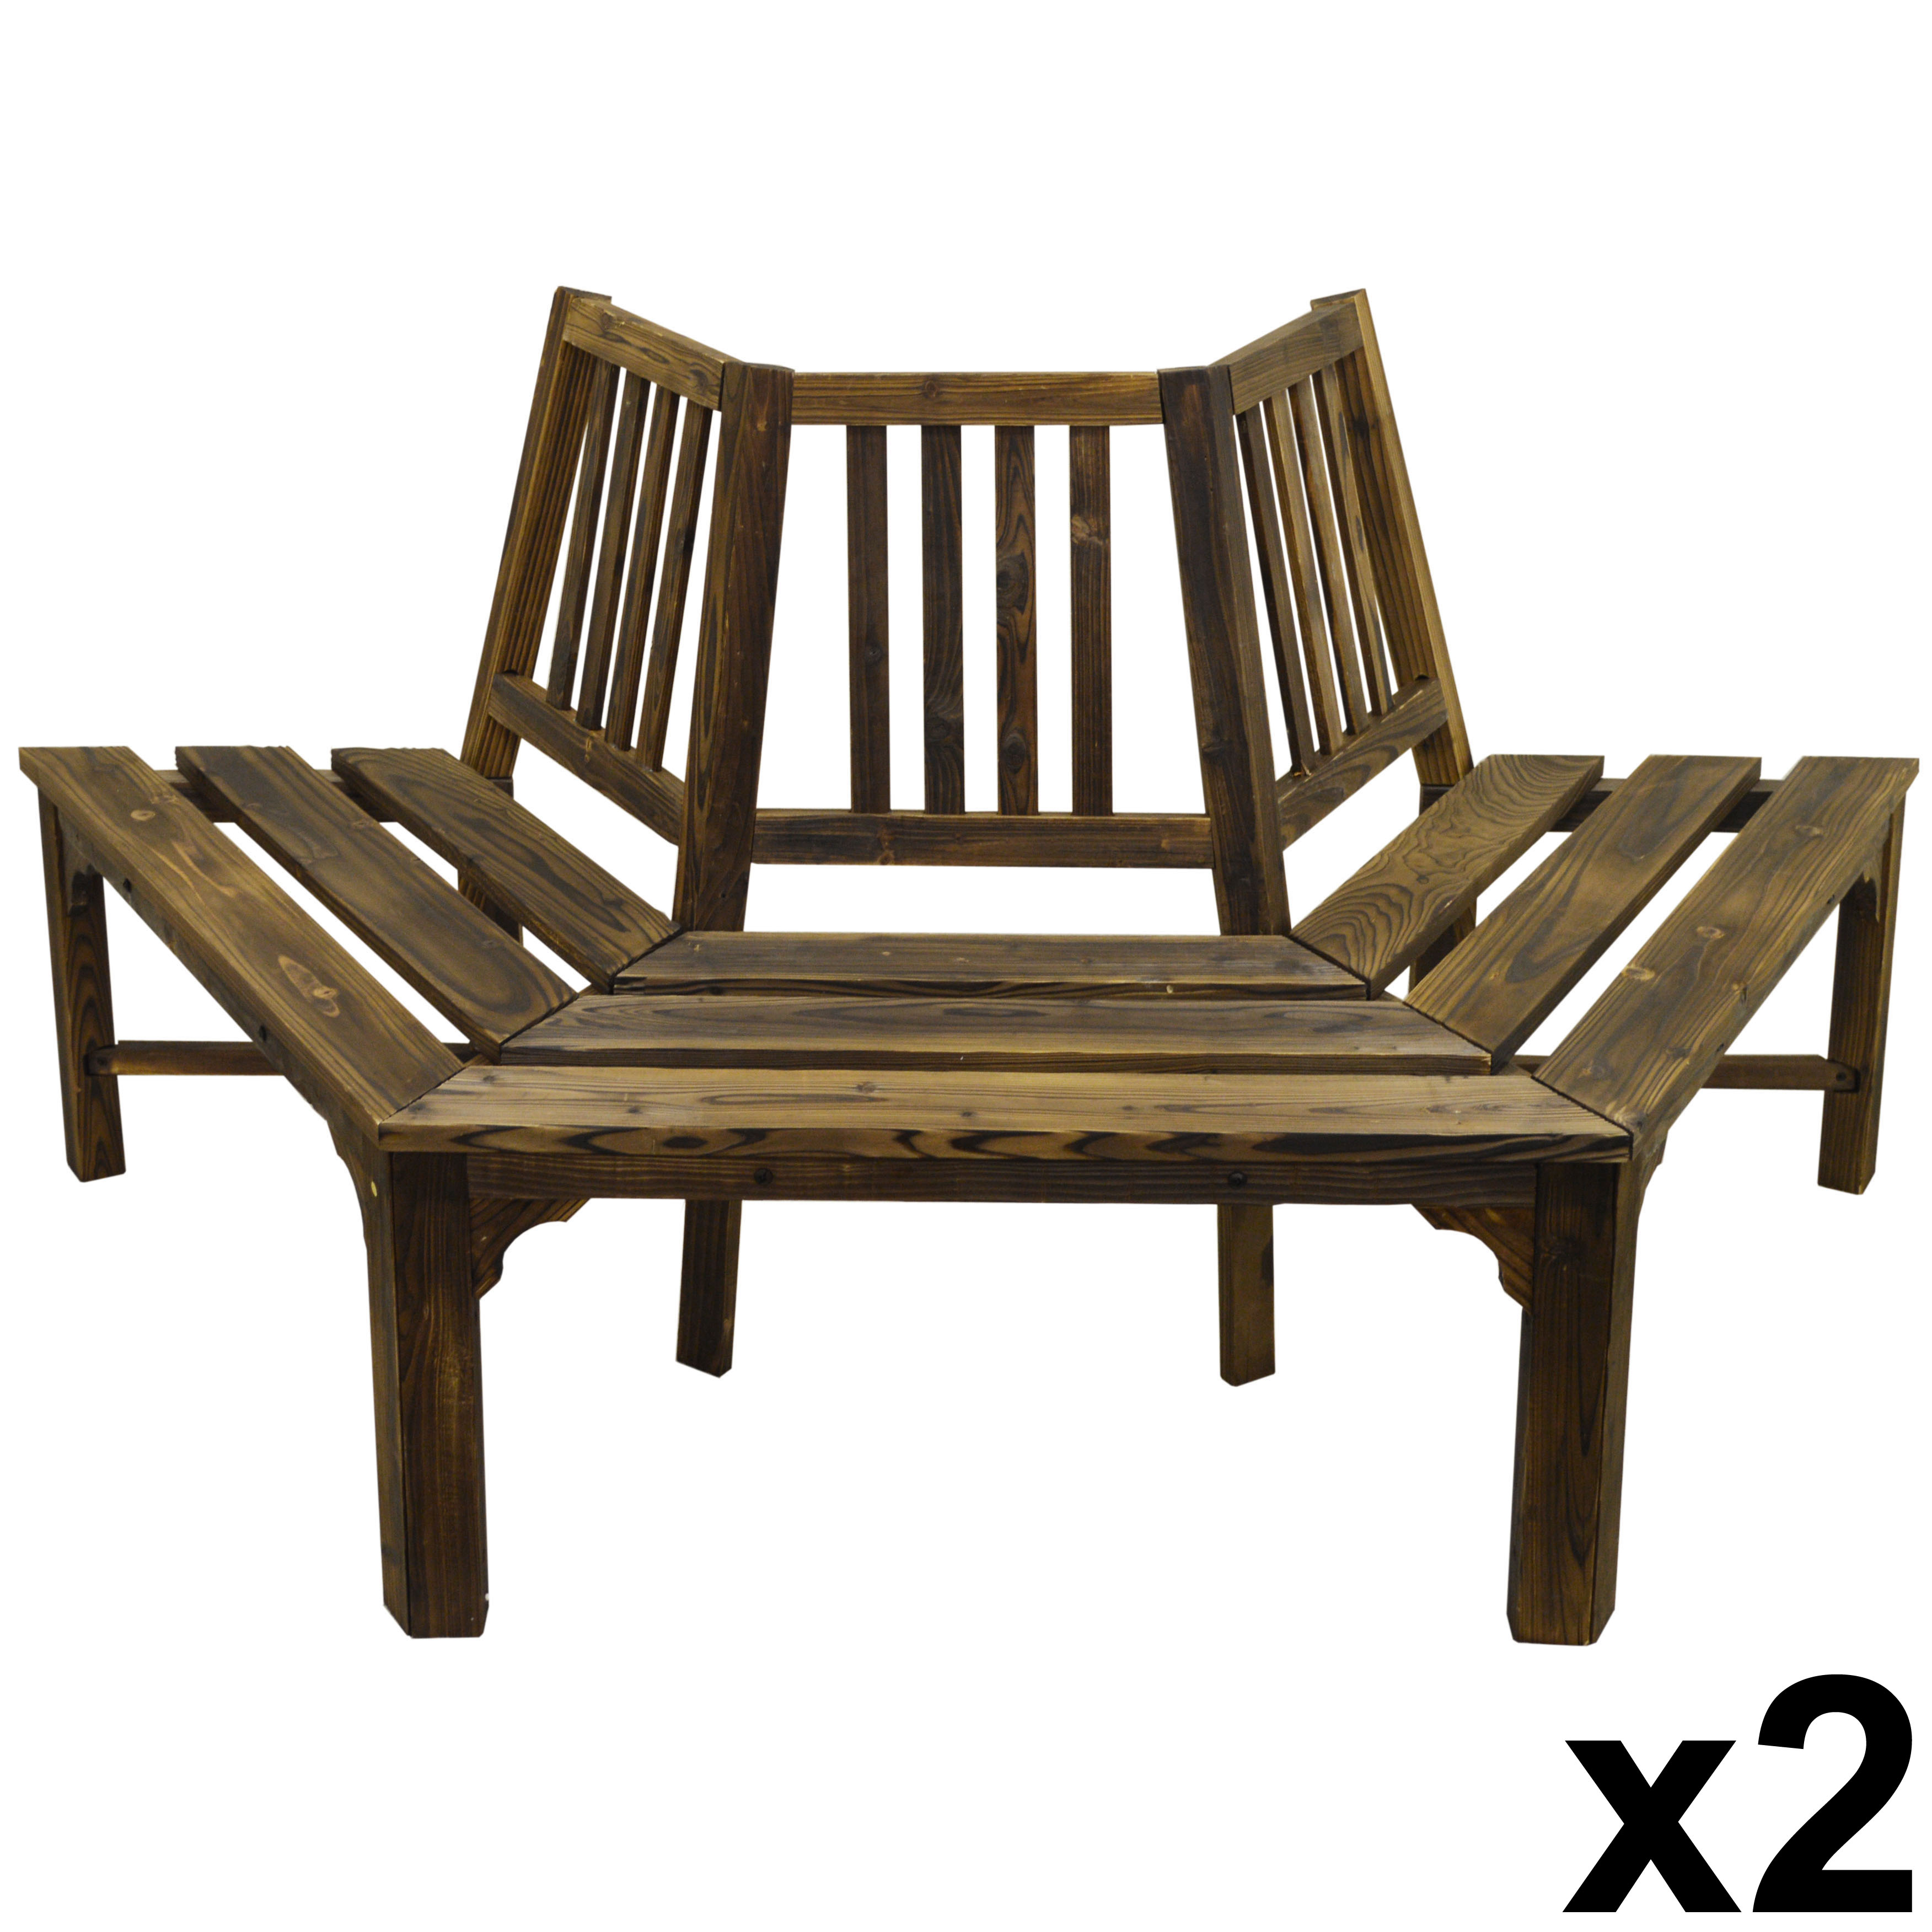 Amazing photo of CURVE Full Circle Tree Bench / Garden Seat Burntwood Watson's On  with #8B7140 color and 3504x3504 pixels